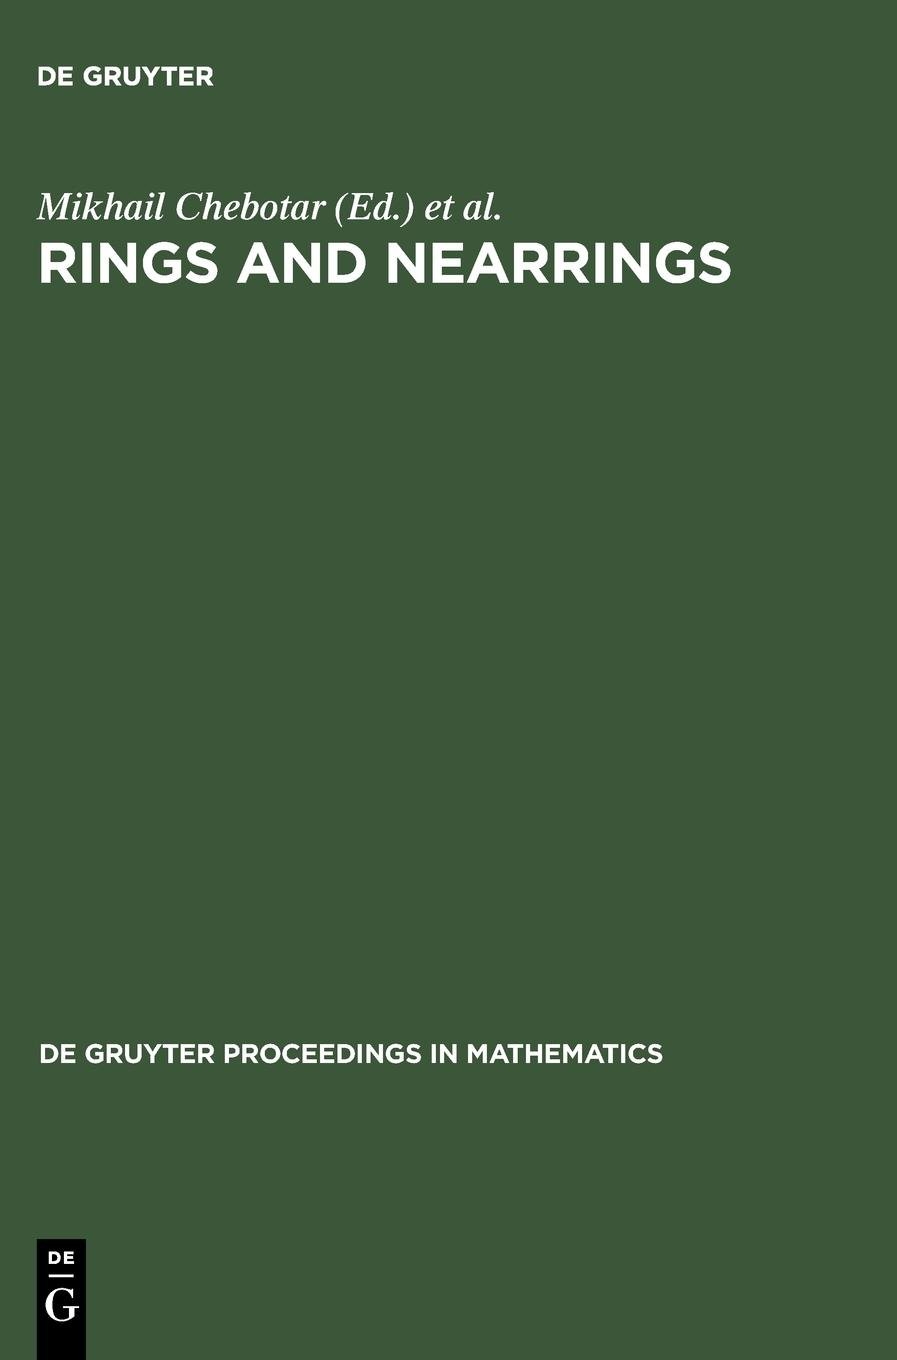 Download Rings and Nearrings (De Gruyter Proceedings in Mathematics) PDF